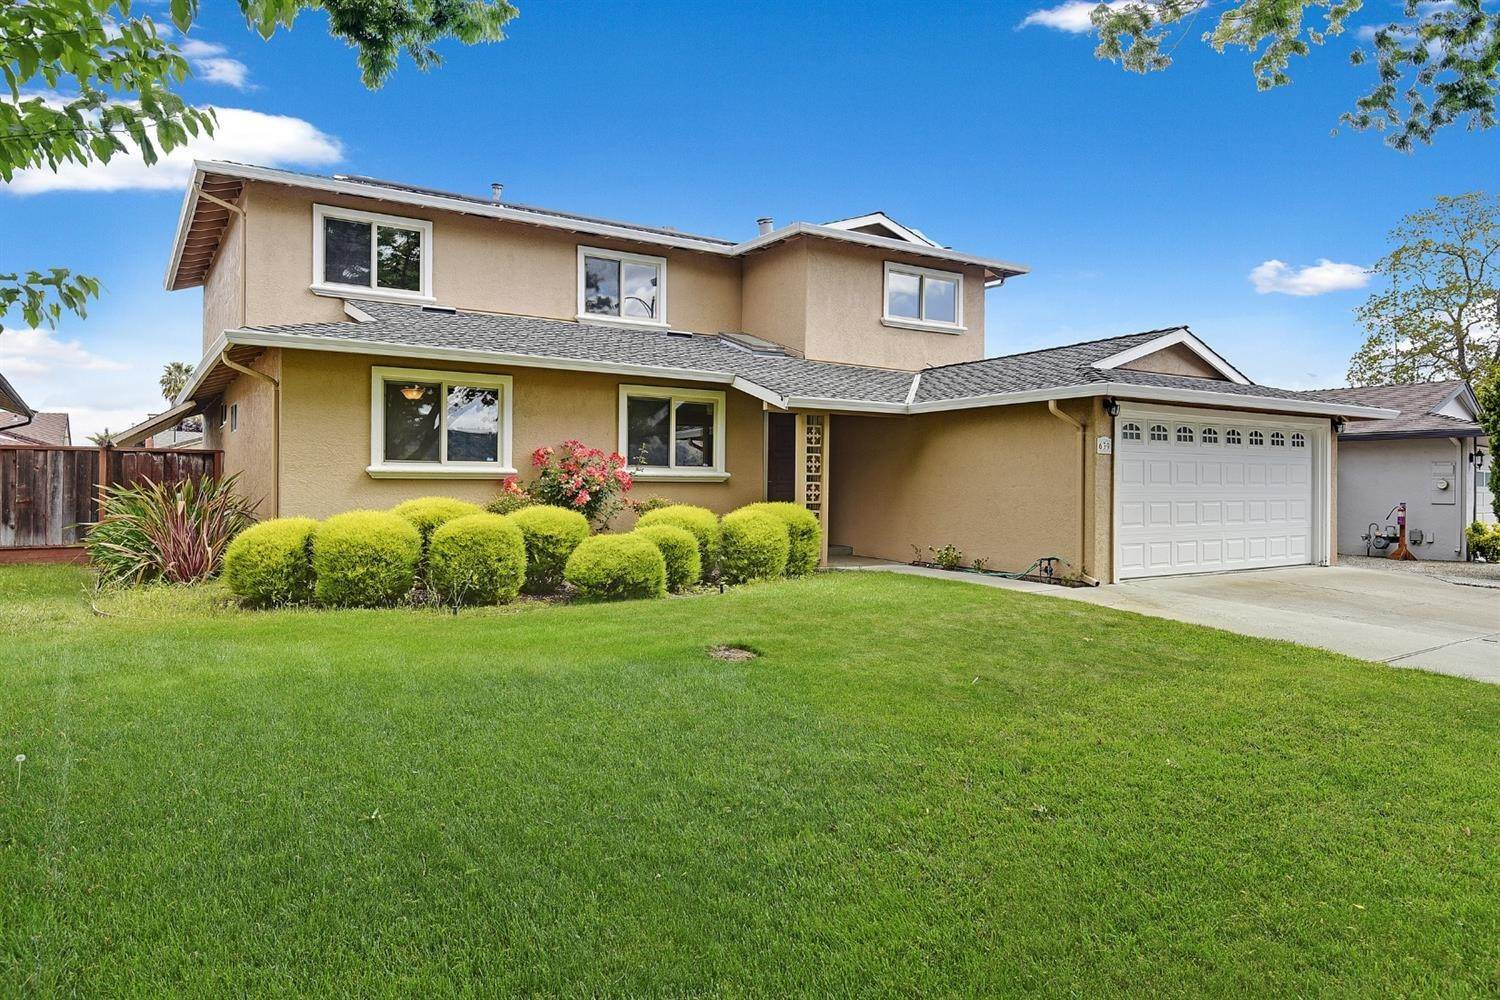 Single Family Homes for Active at 639 Shawnee Lane San Jose, California 95123 United States